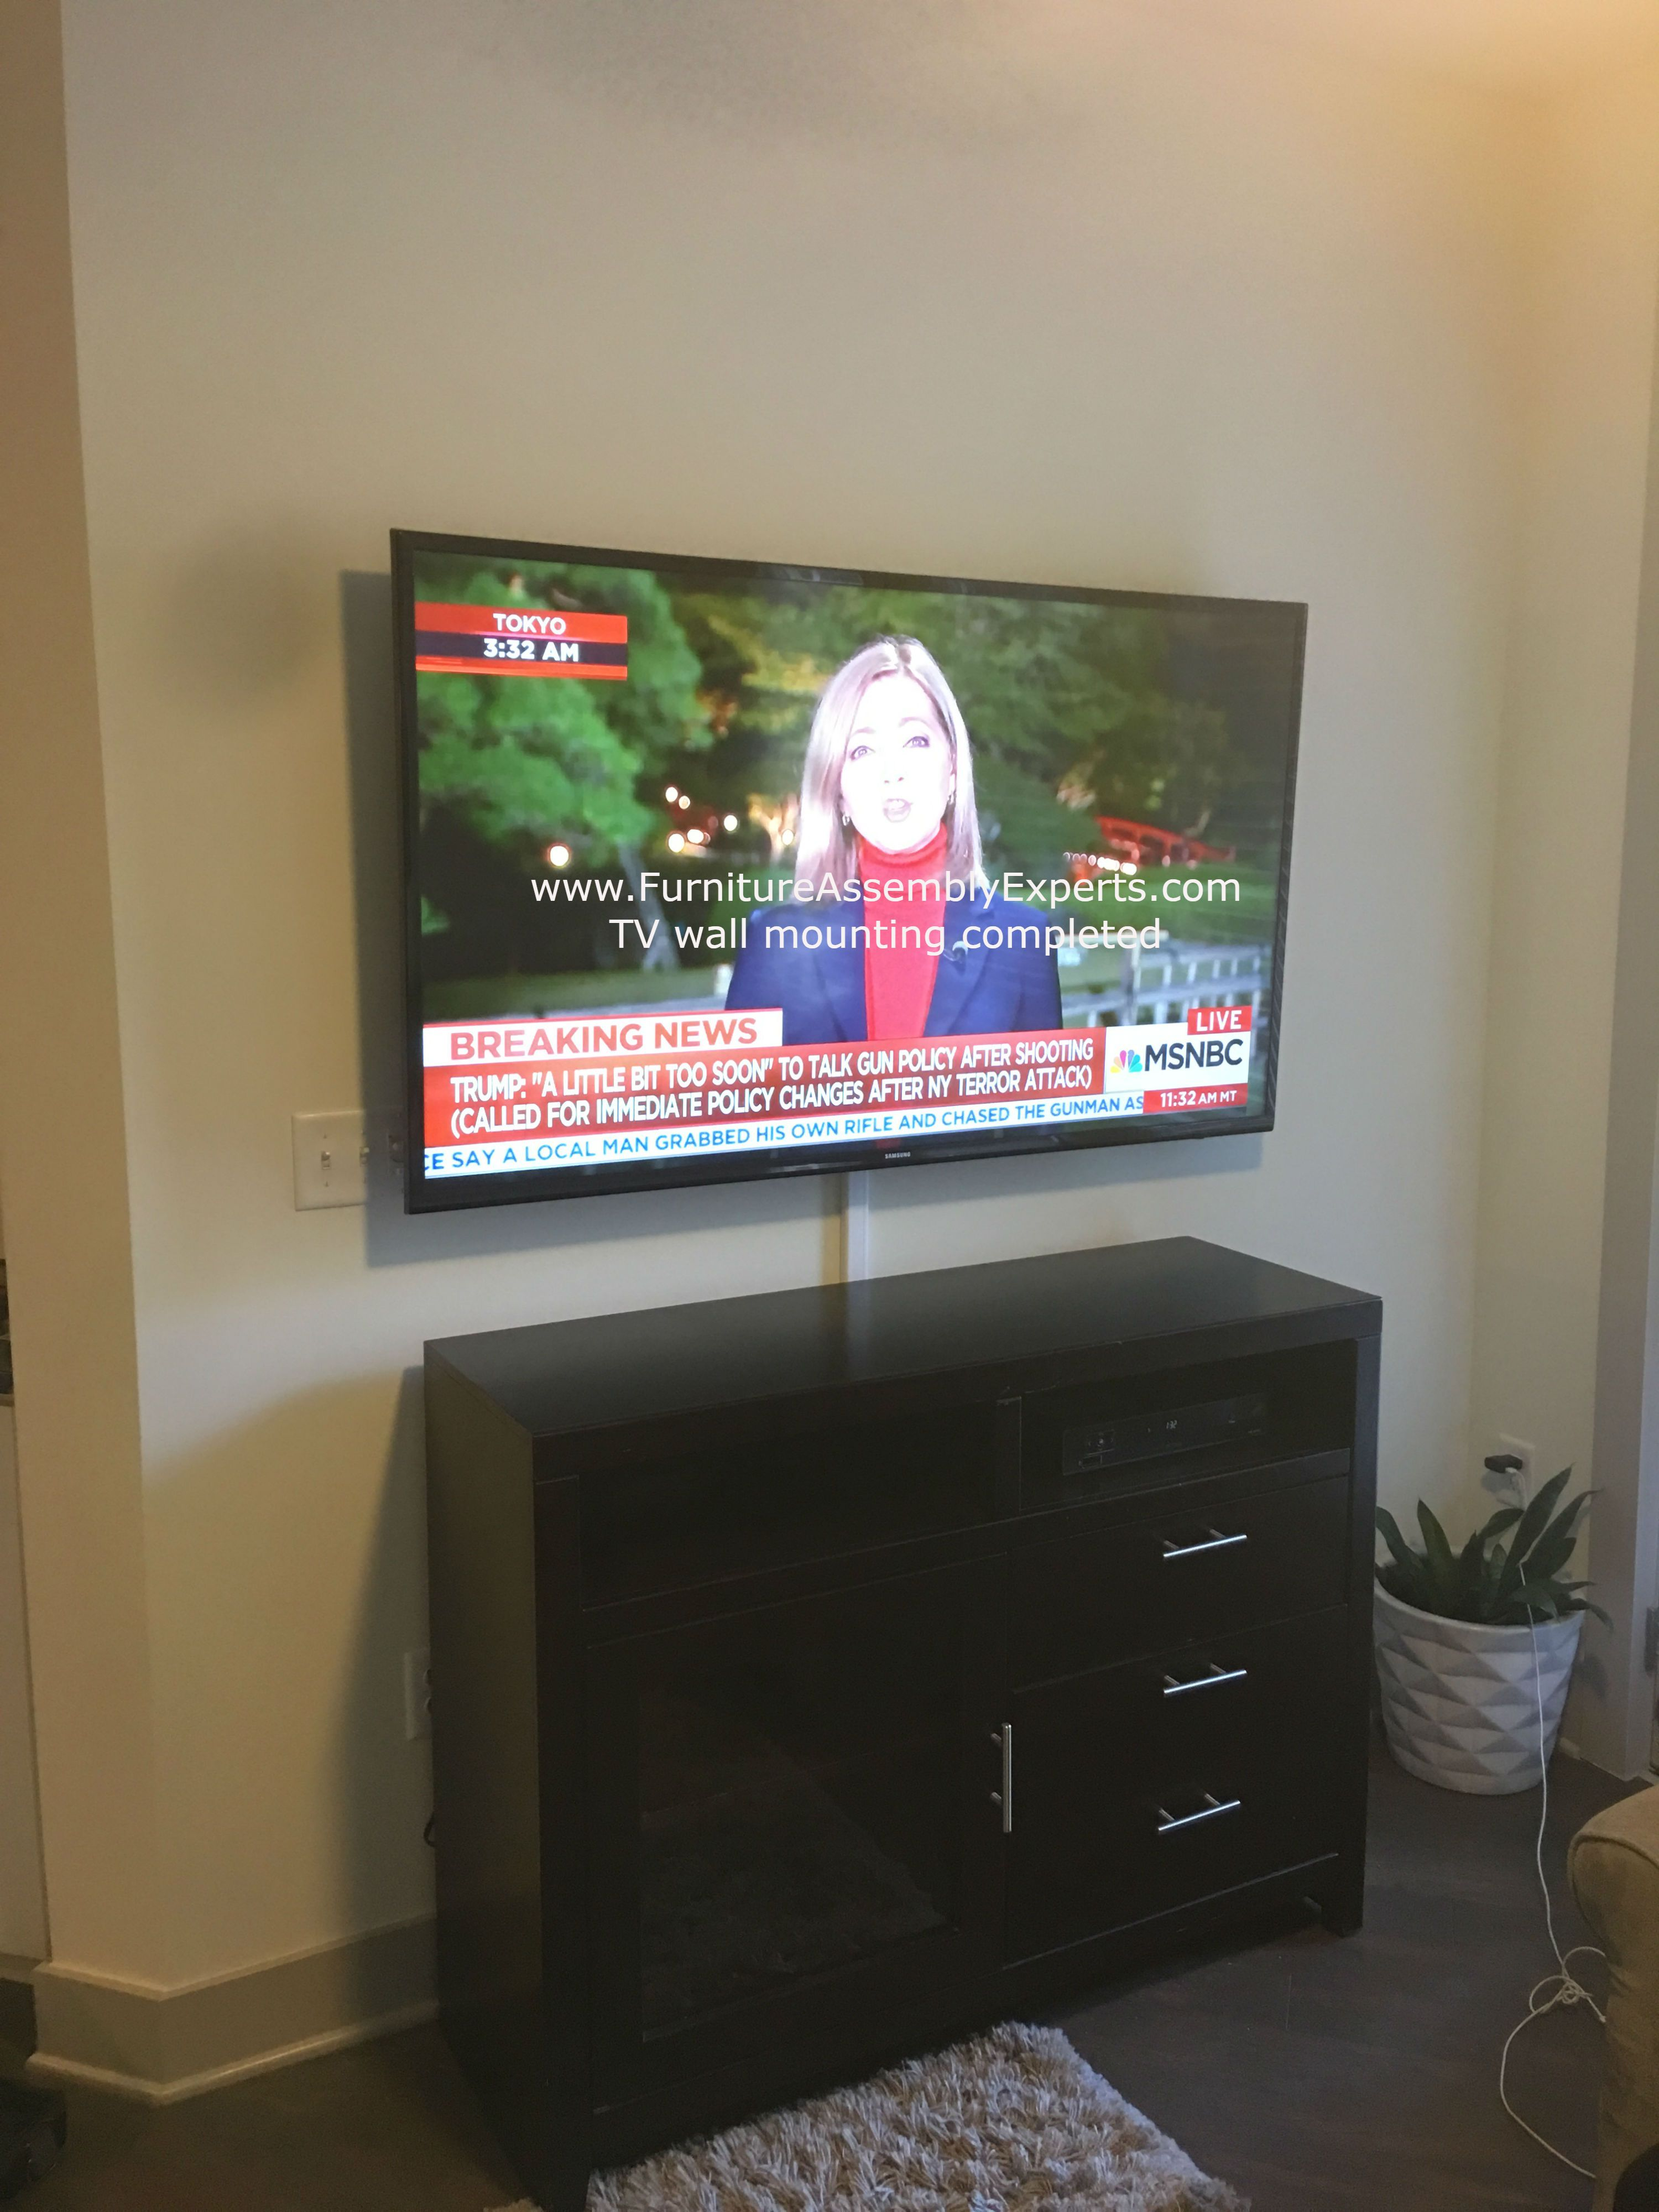 Tv Wall Installation Service Completed In Philadelphia By Furniture Assembly Experts Company We Servic Tv Wall Tv Wall Mount Installation